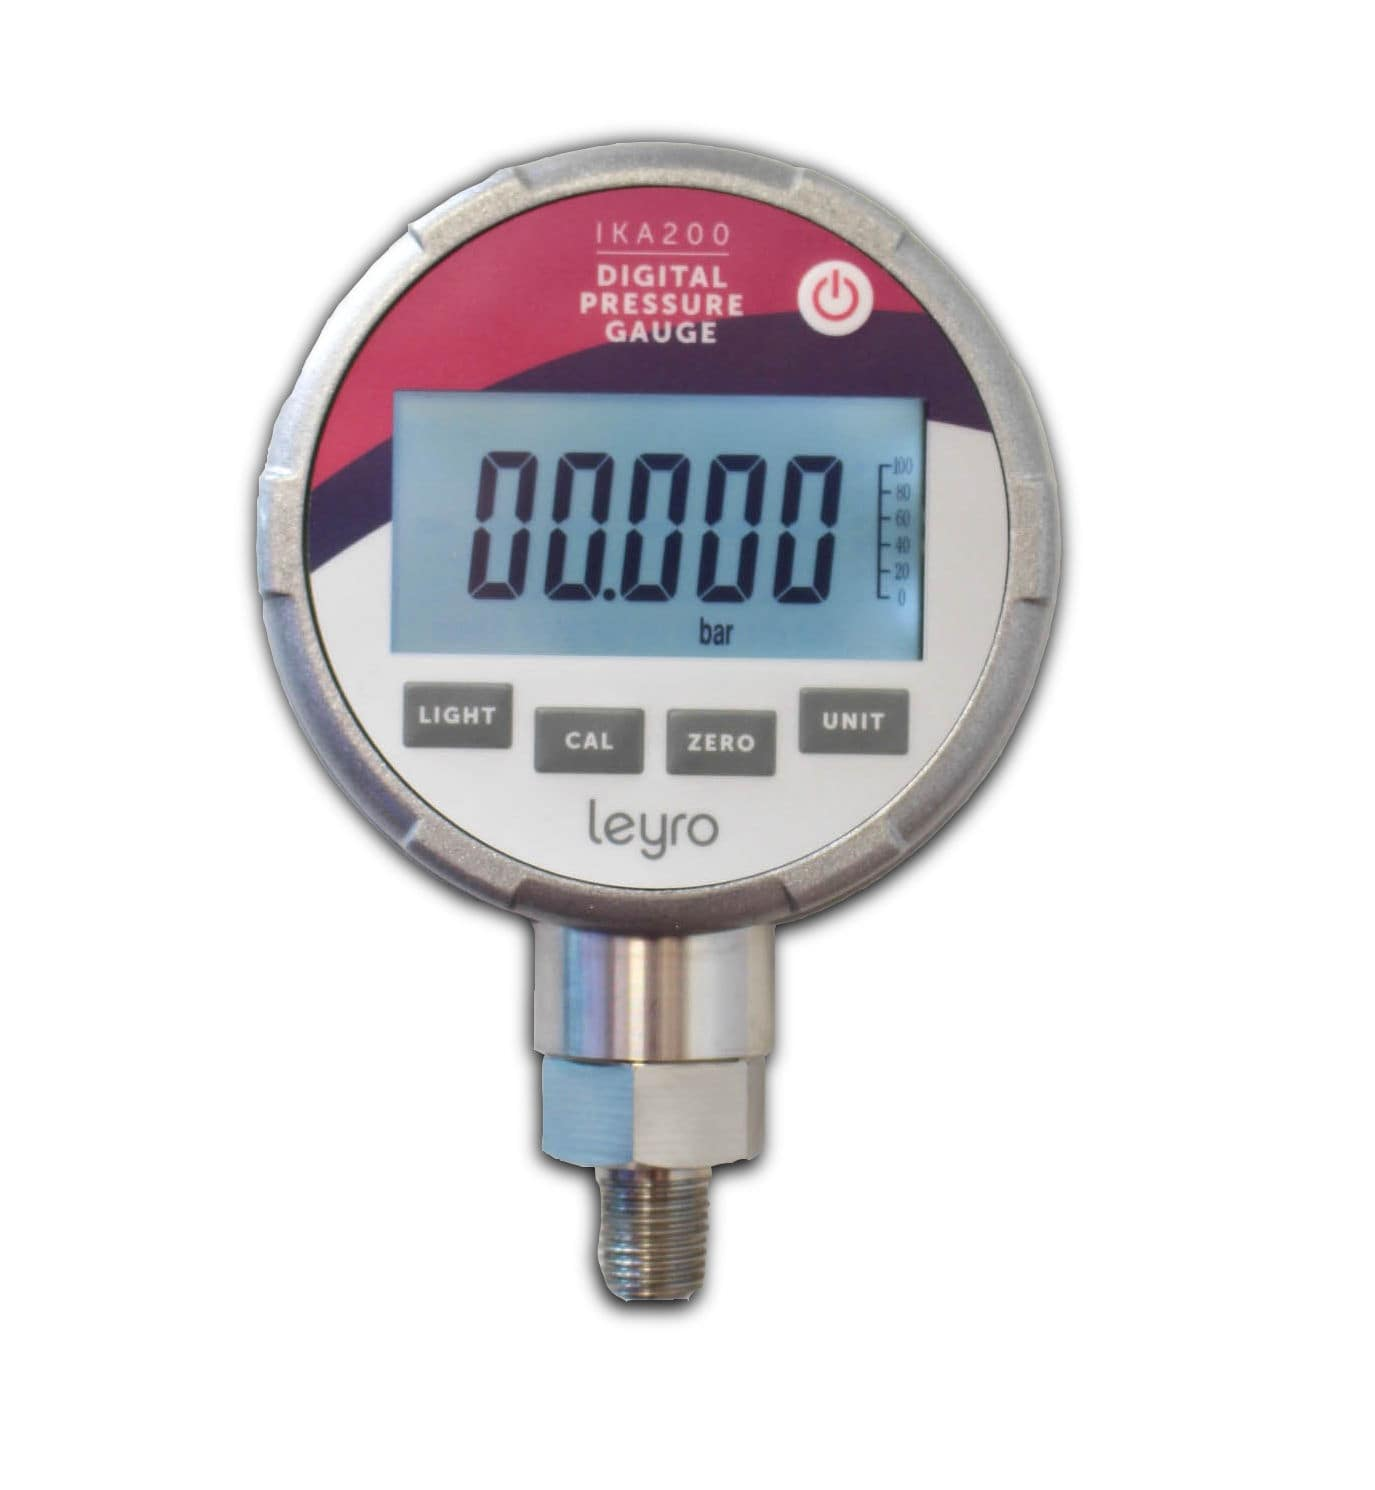 Digital pressure gauge / electronic / calibration - IKA 200 - Leyro